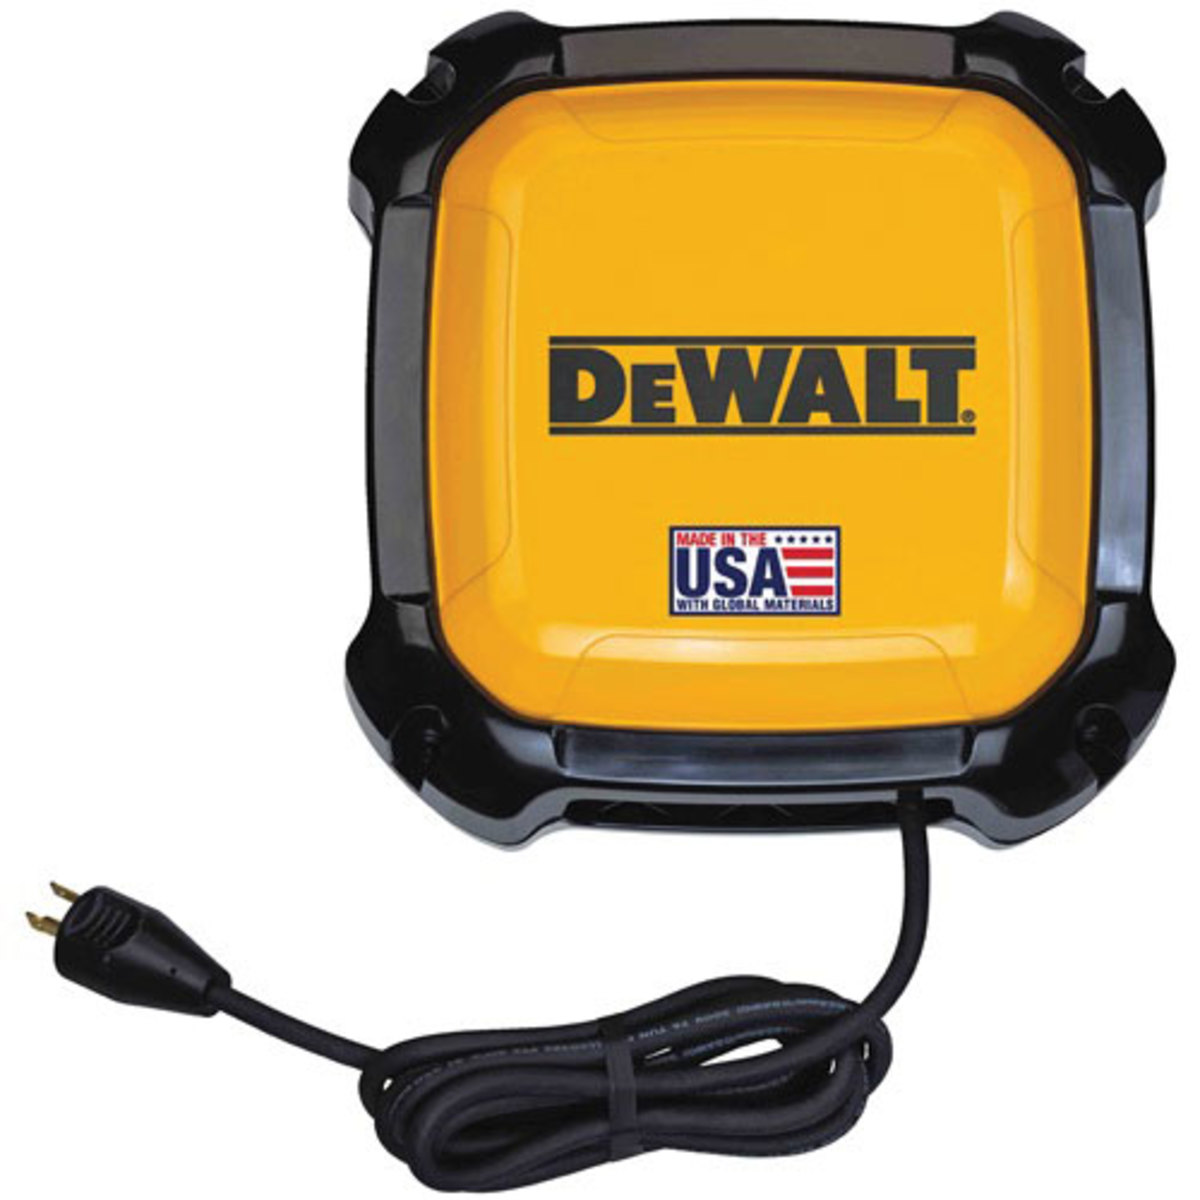 DeWalt Jobsite WiFi Access Point device